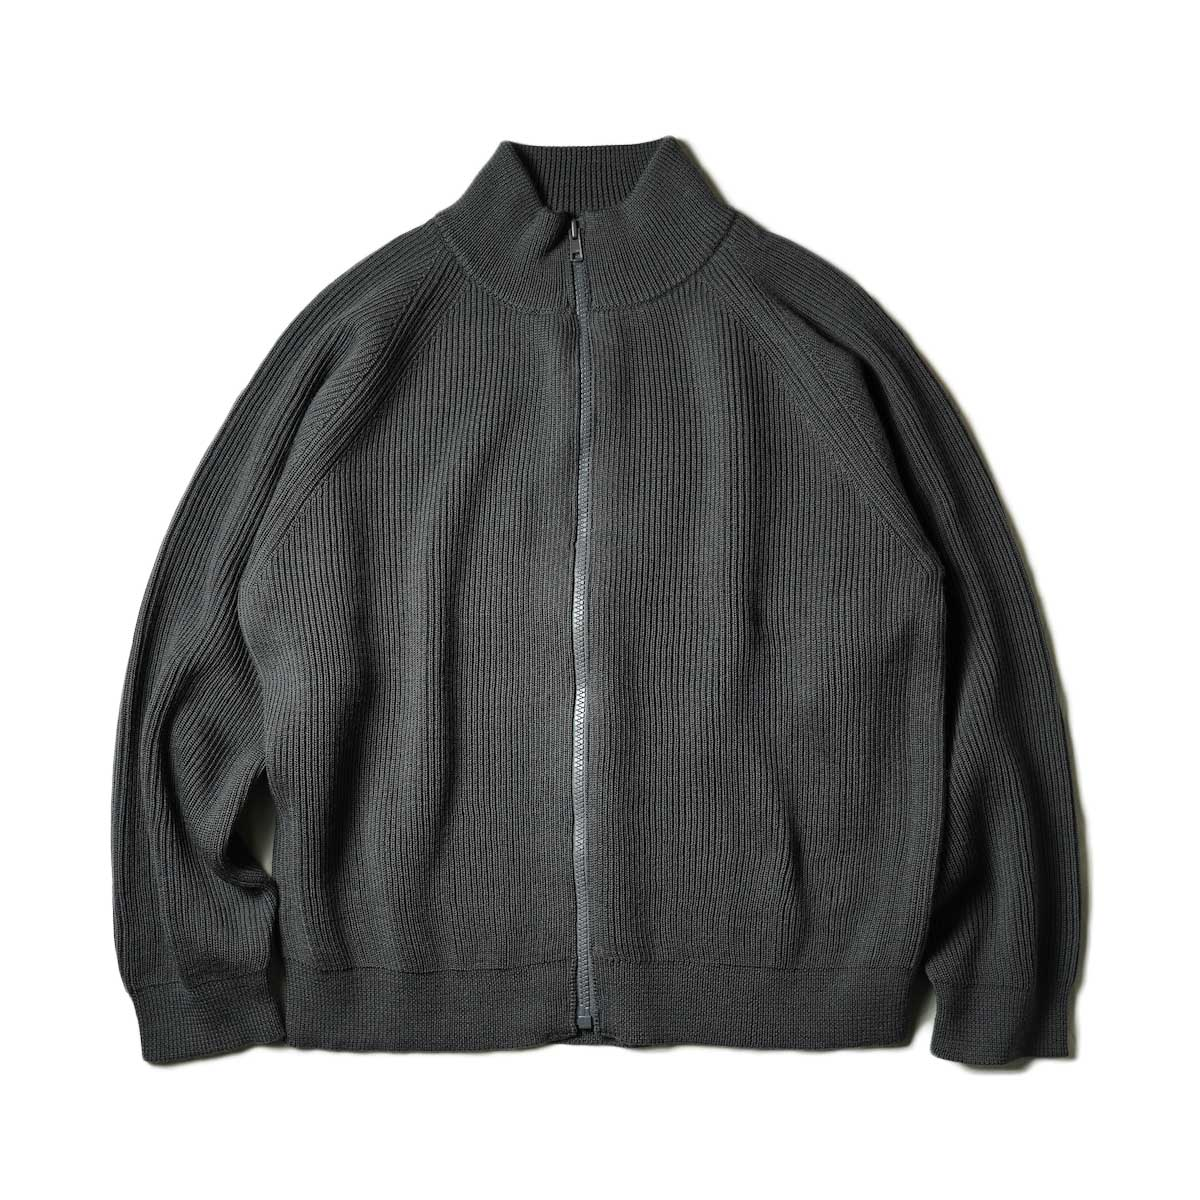 EVCON / DRIVERS SWEATER (Charcoal) 正面